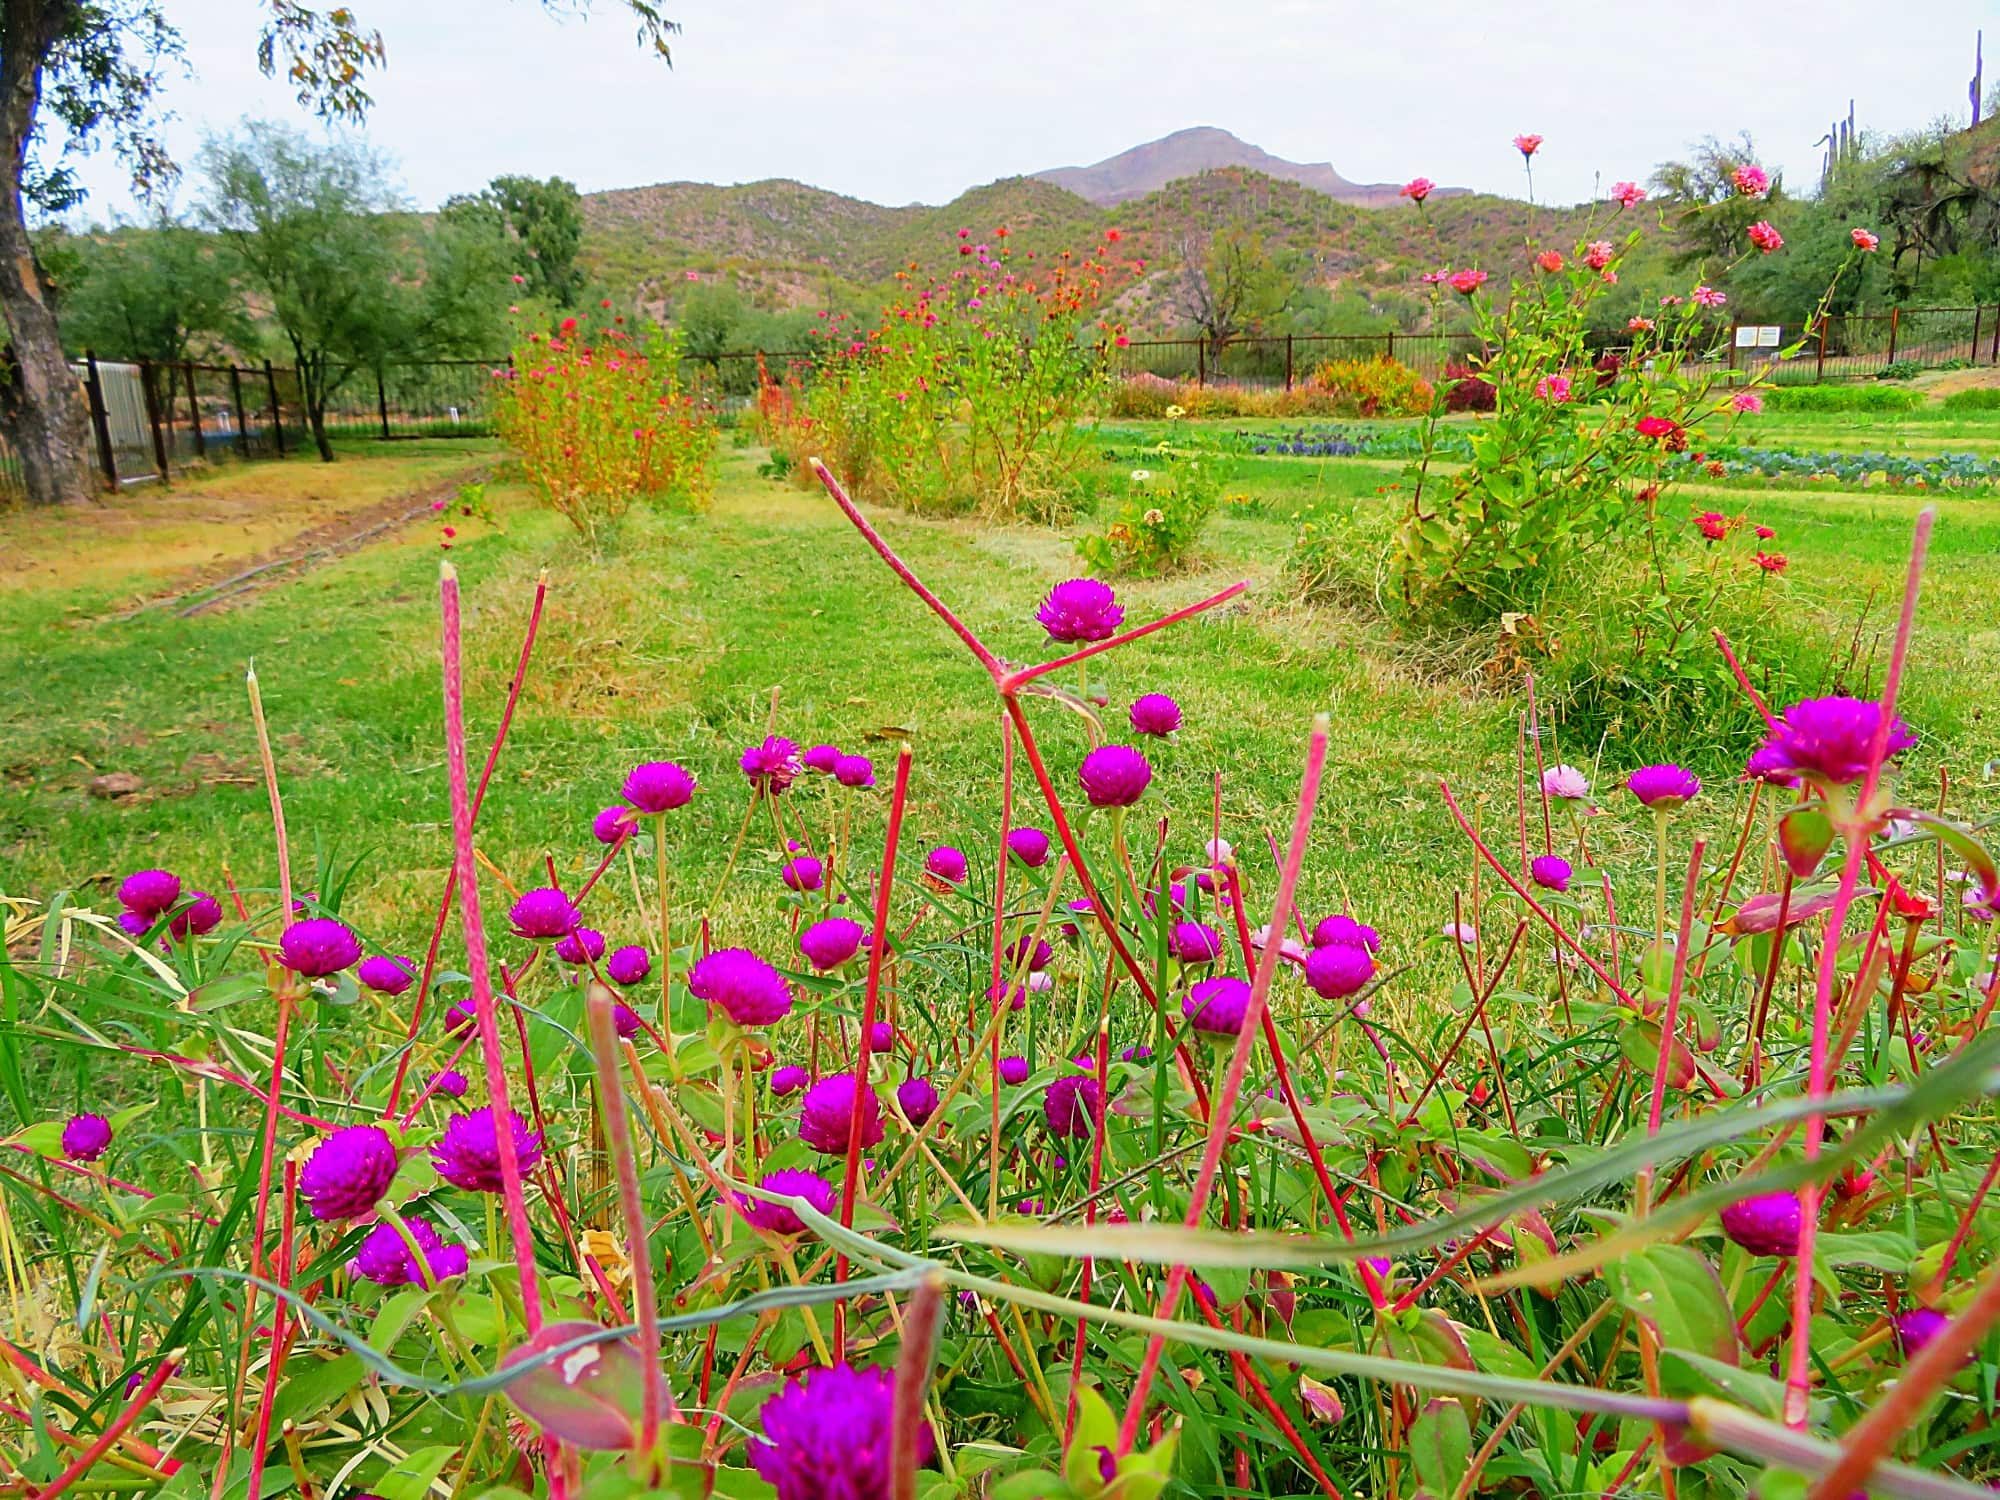 Purple flowers at Aravaipa Farms Inn